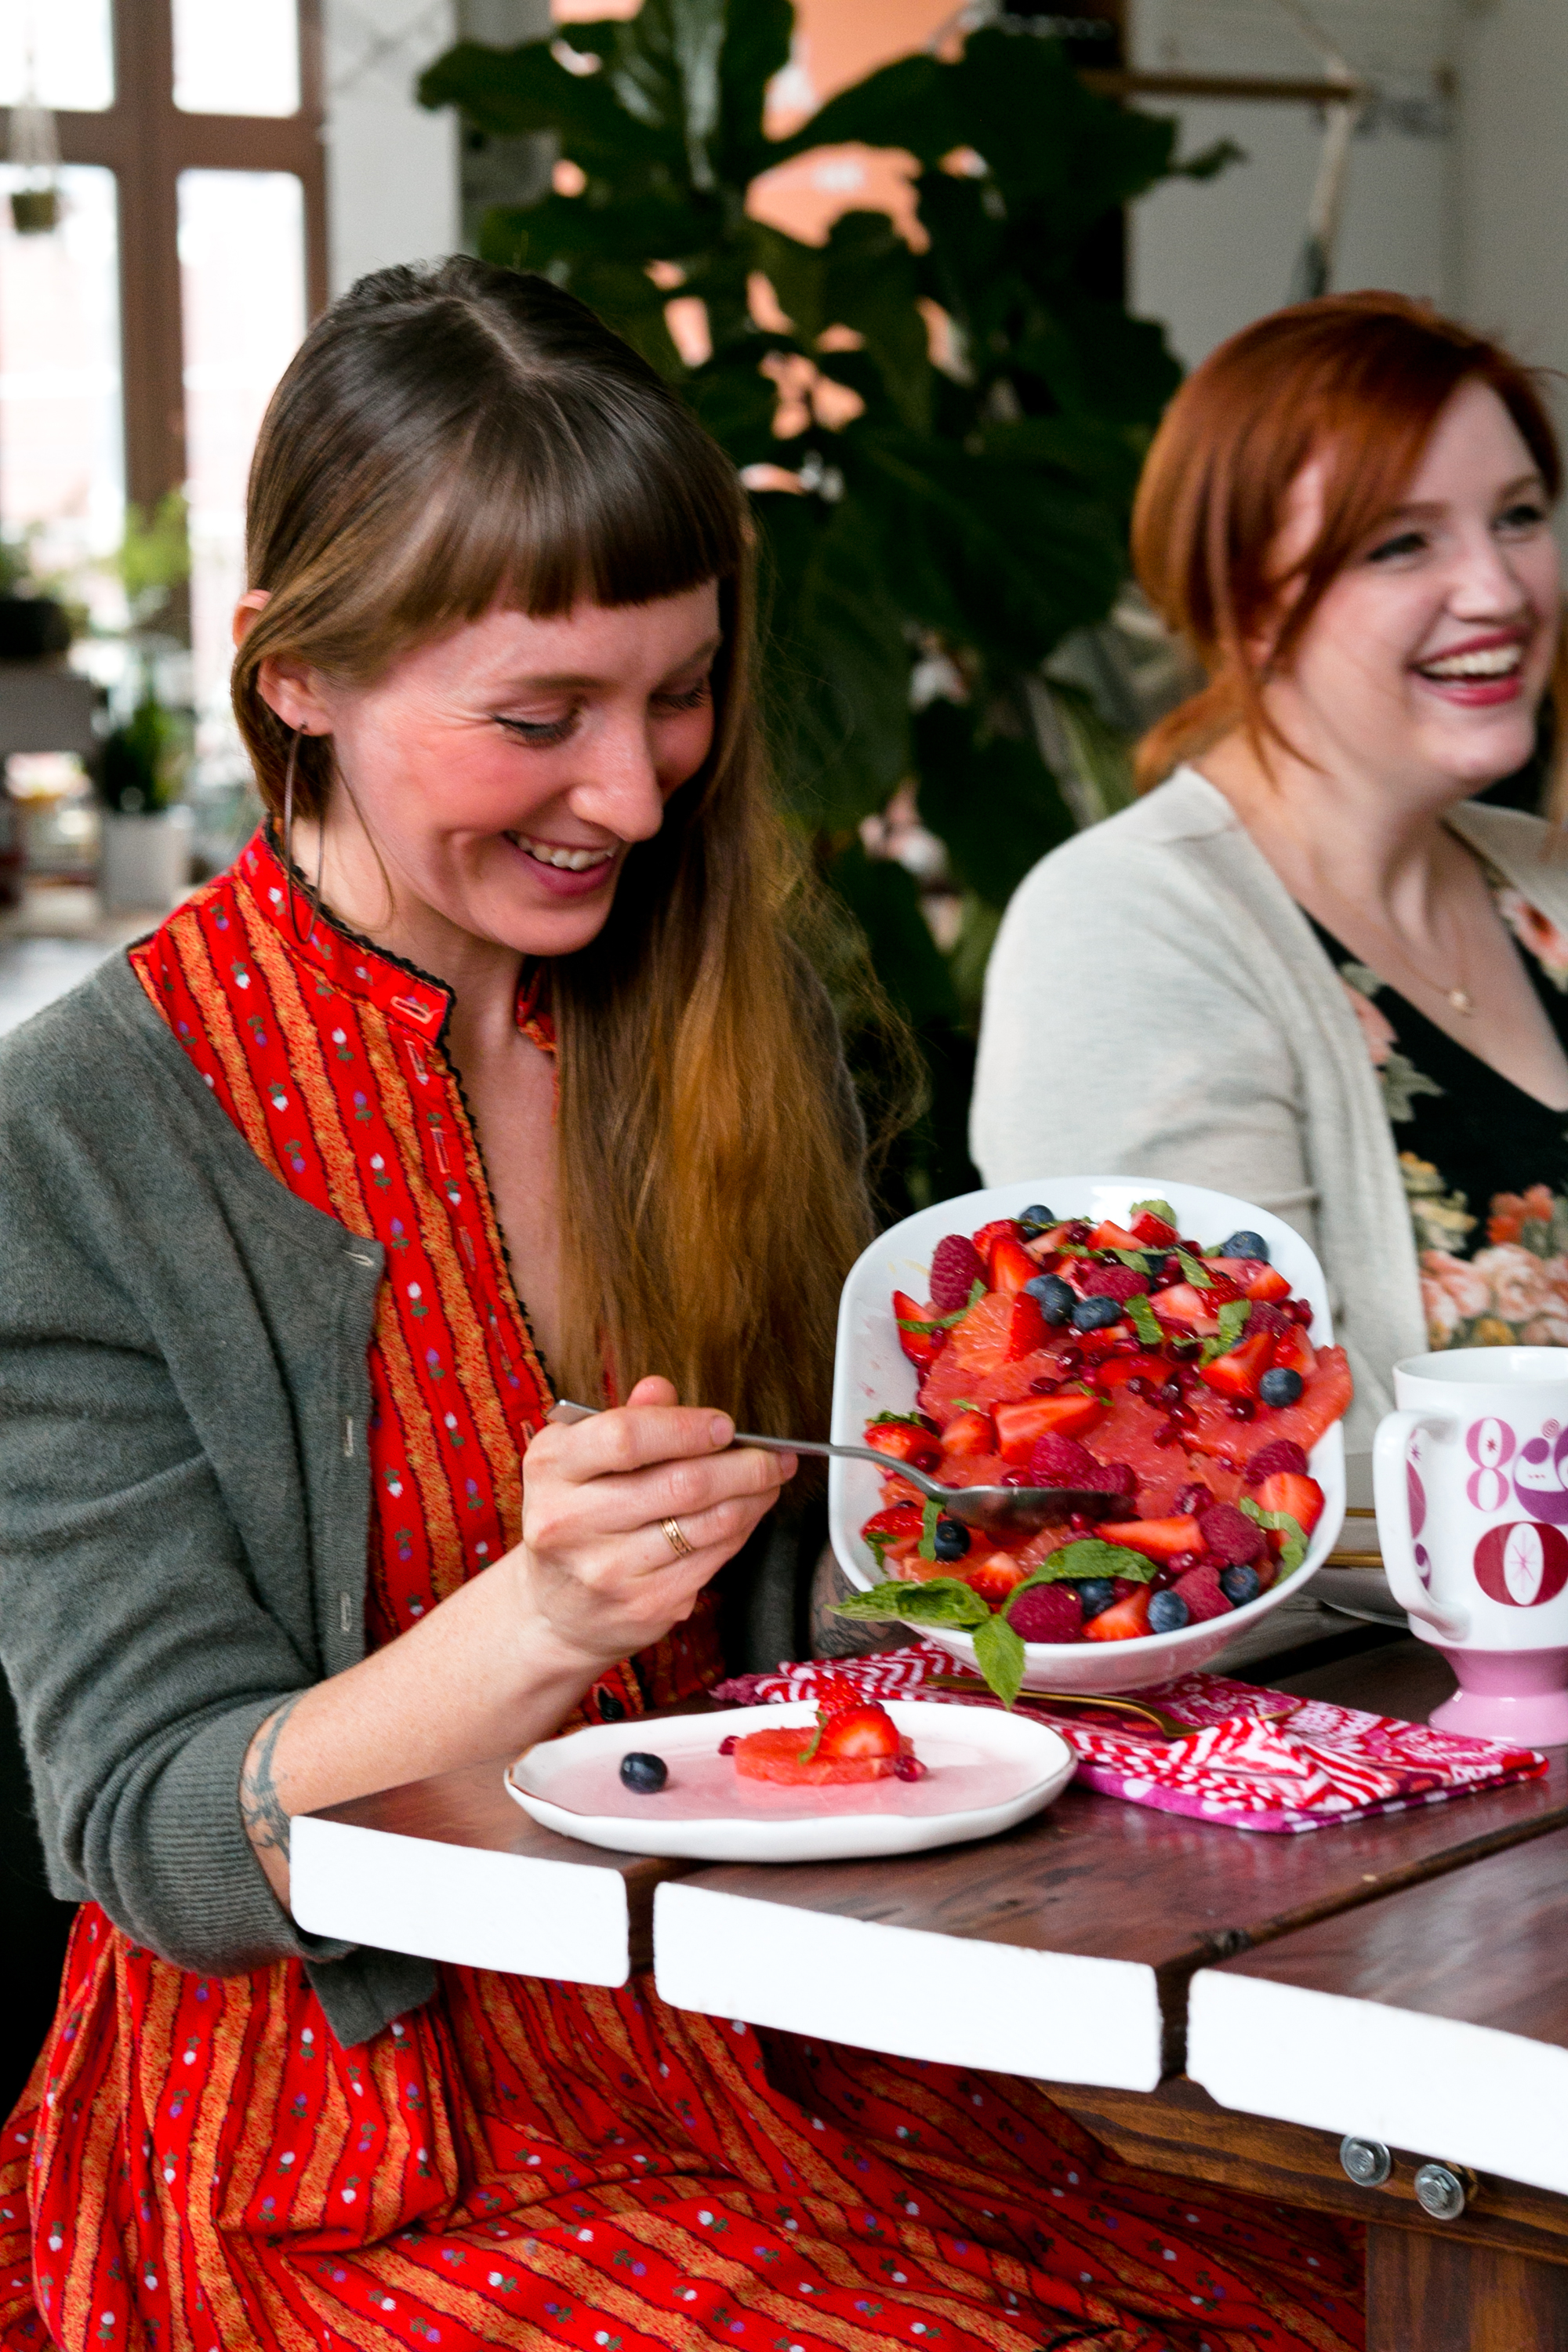 Grapefruit and Berry Salad from Galentine's Day Brunch. UnusuallyLovely.com